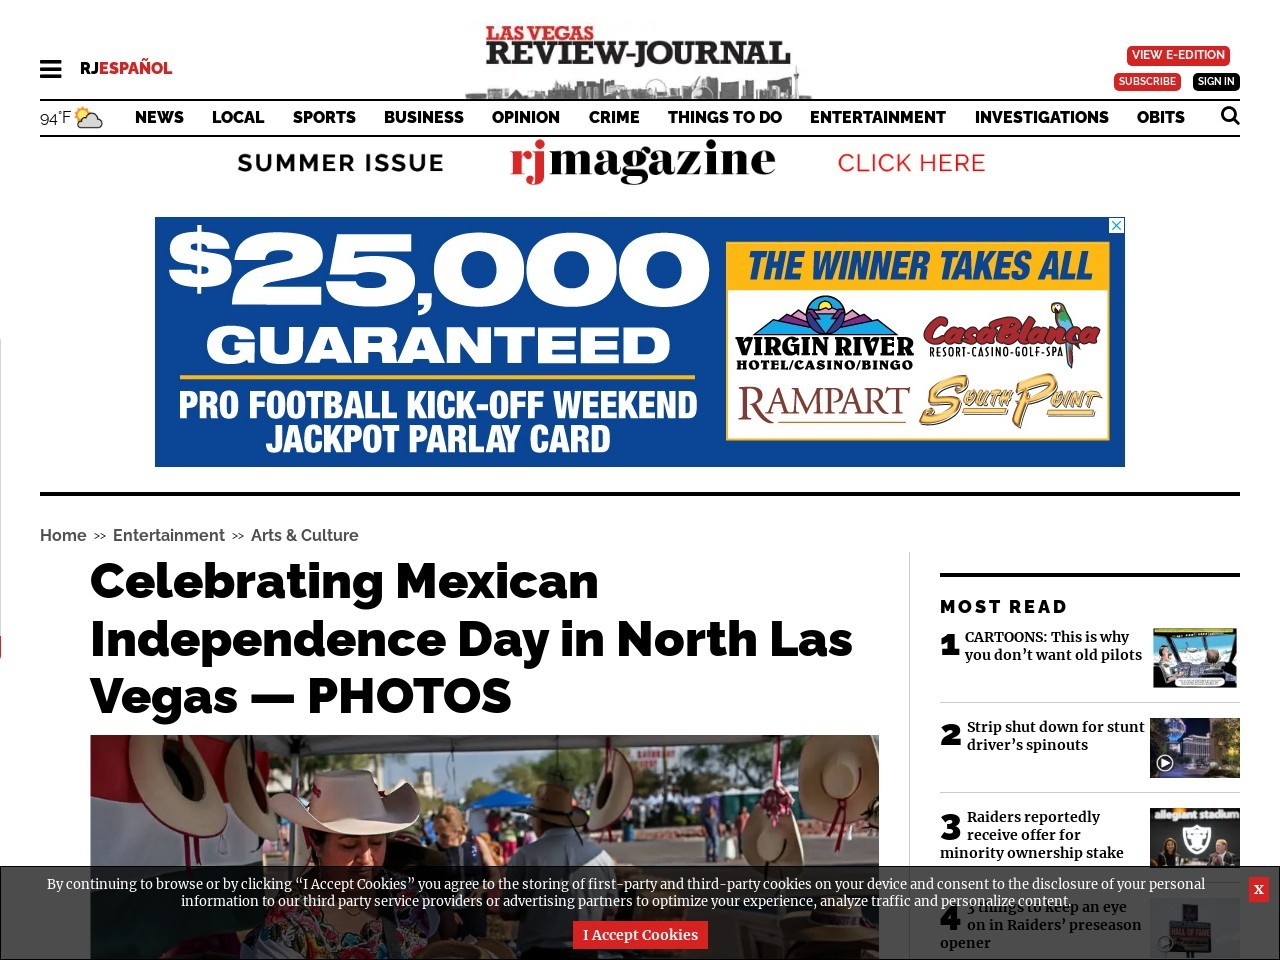 Celebrating Mexican Independence Day in North Las Vegas — PHOTOS